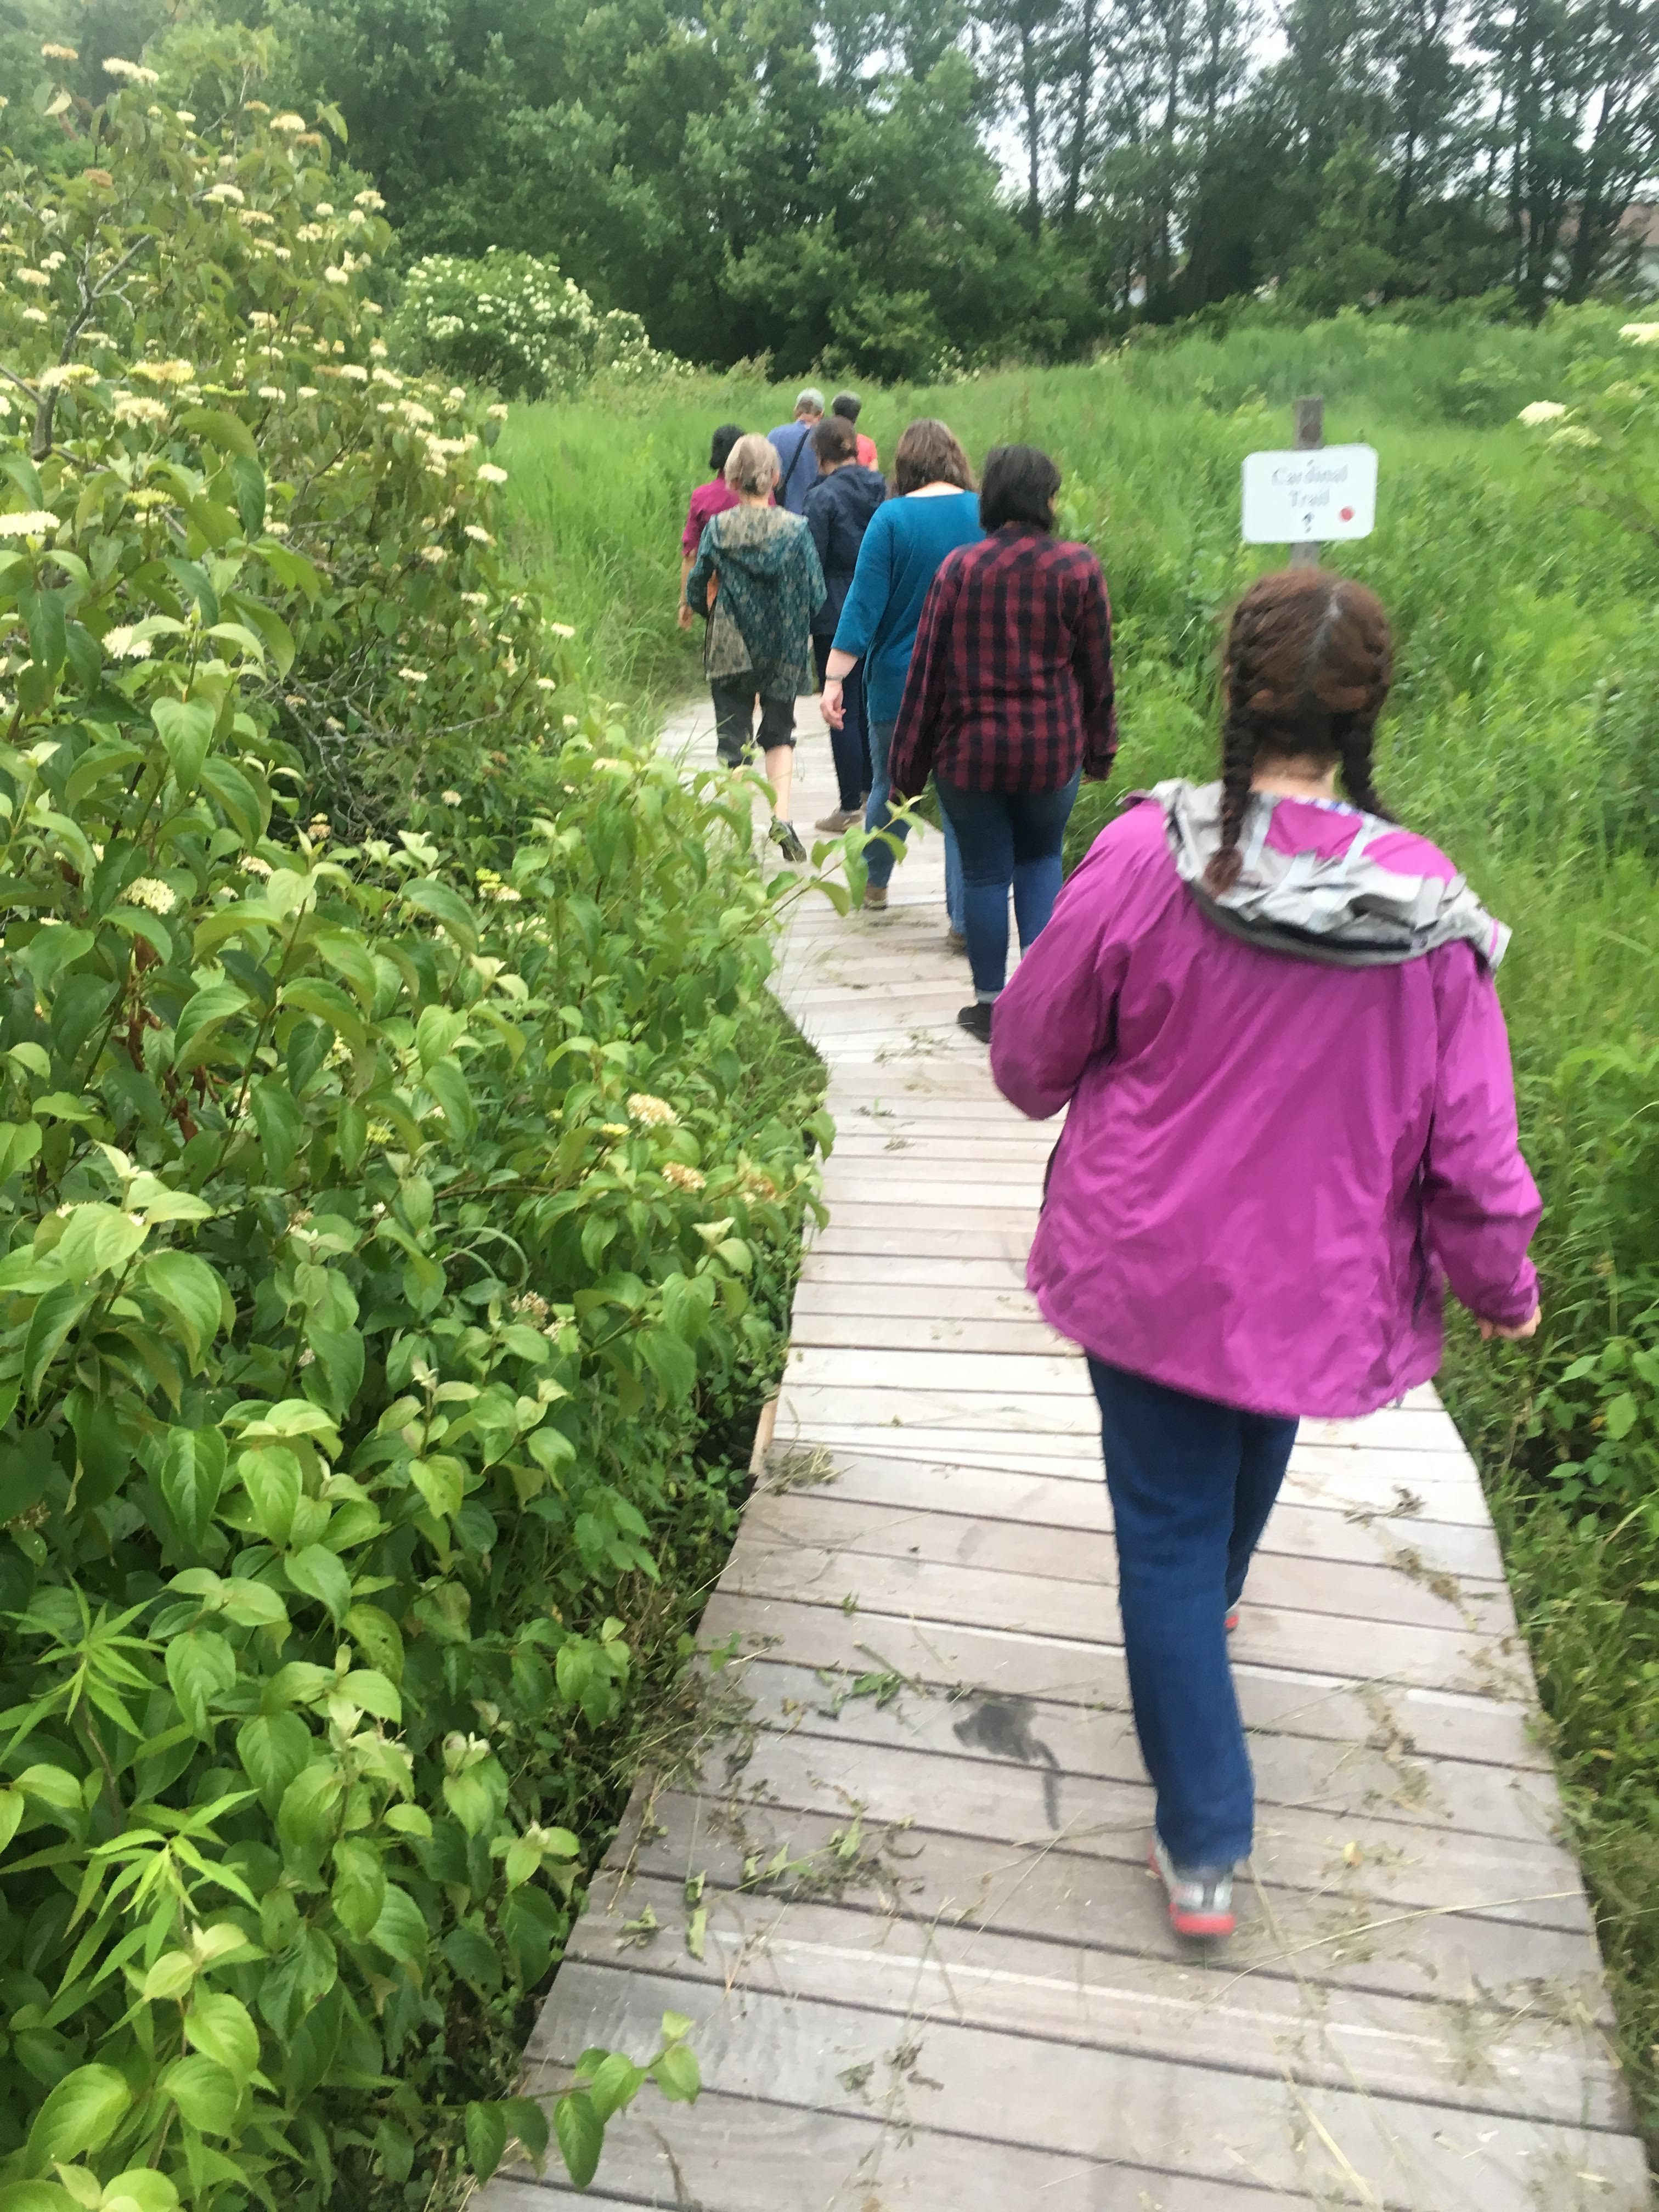 Summer Short Course: Animals and Society 2018 - Broad Meadow Brook Conservation Center and Wildlife Sanctuary in Worcester, MA